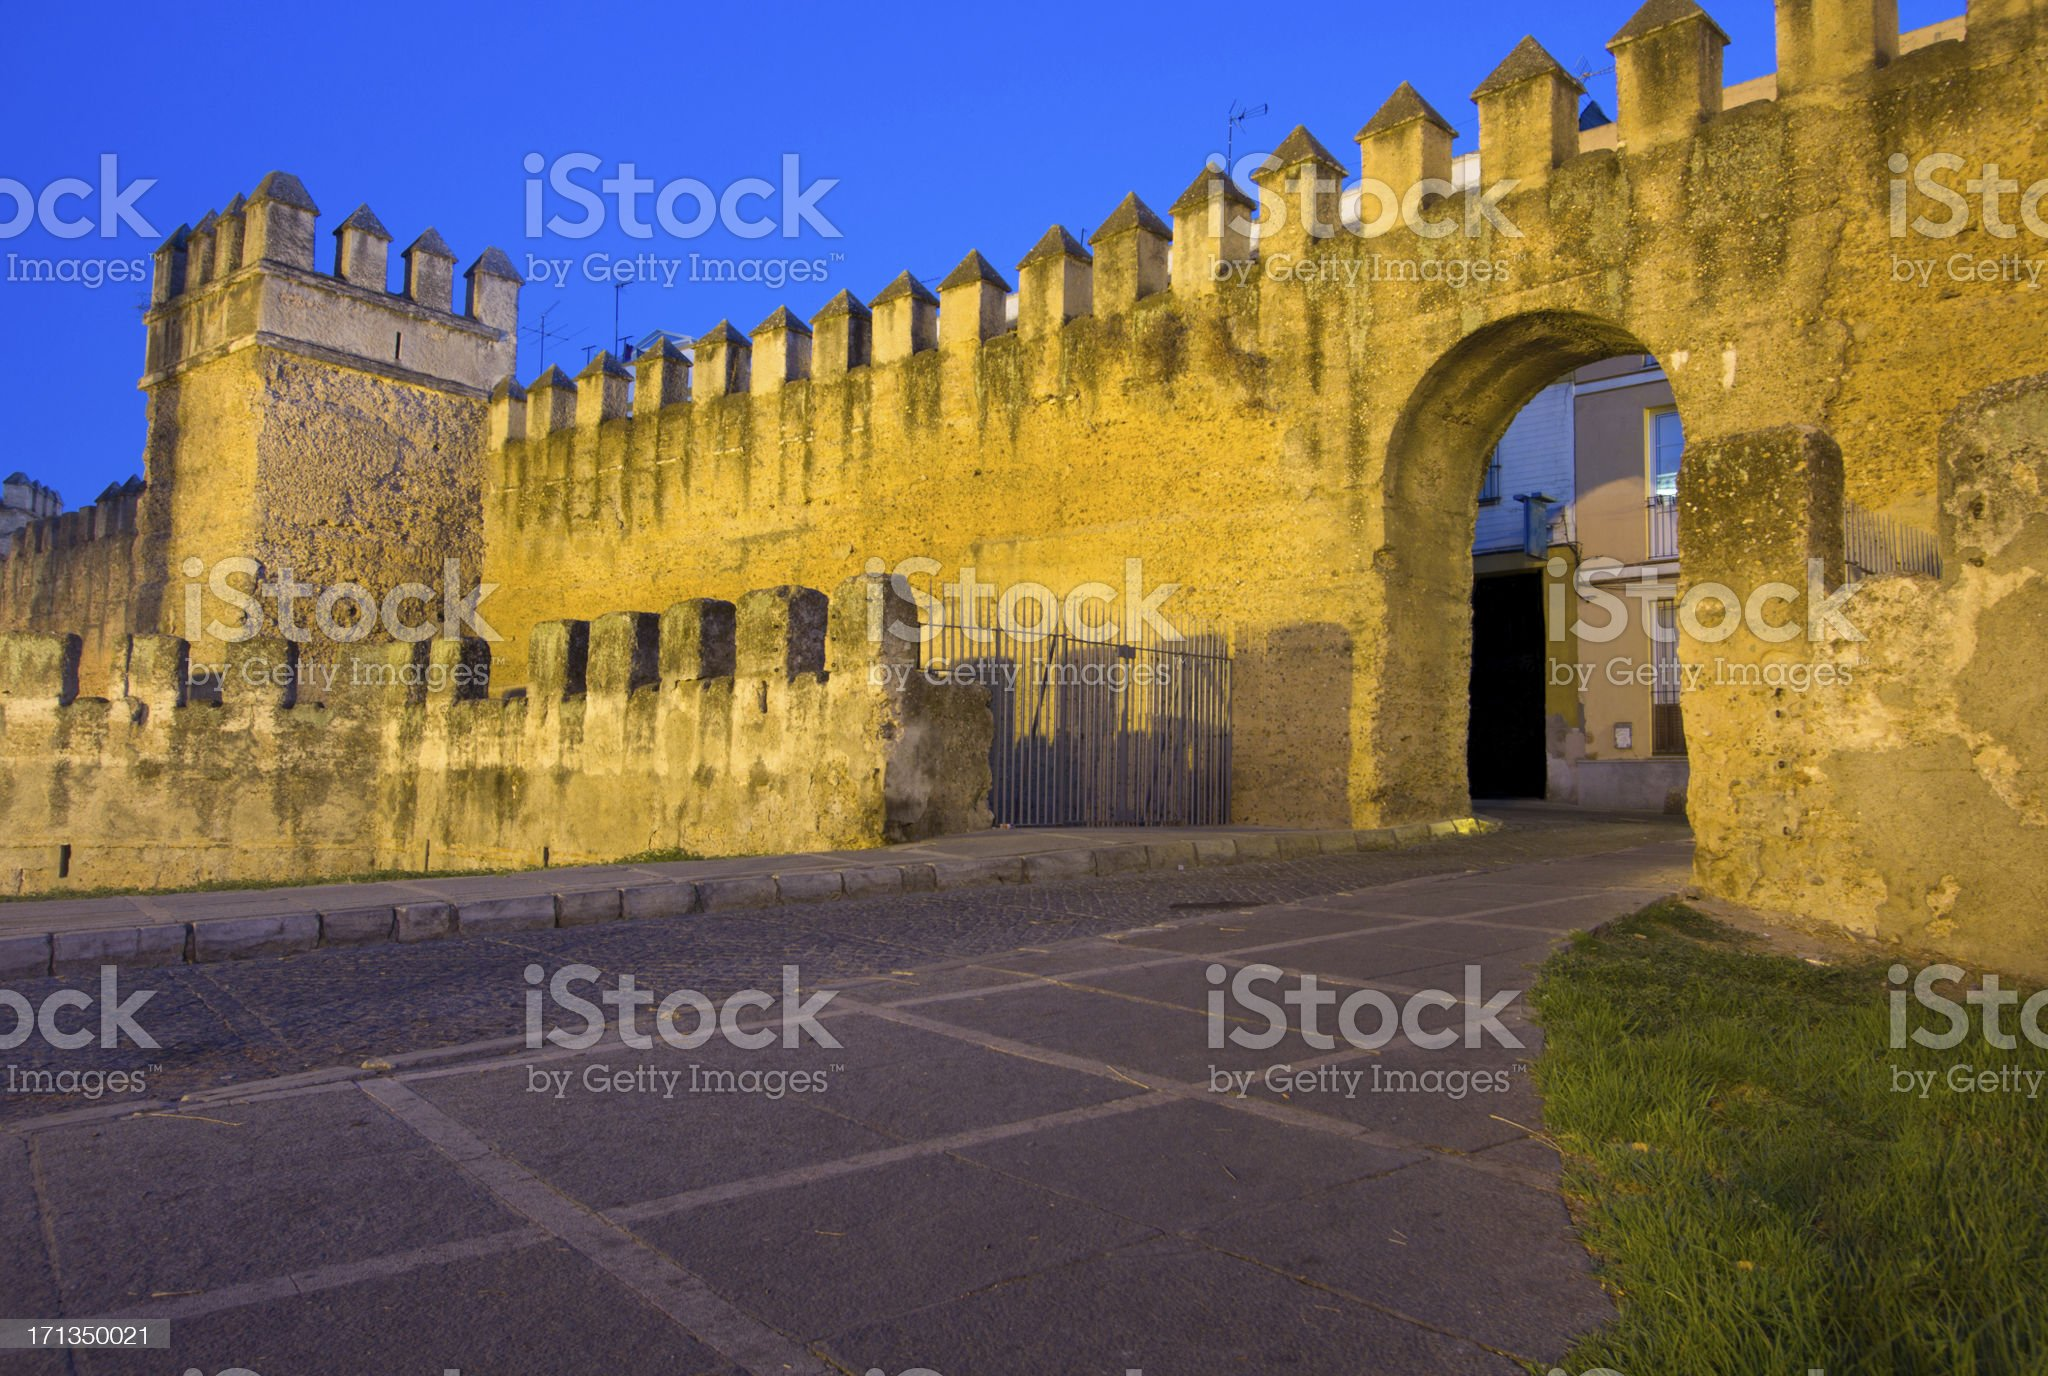 City Walls in Seville, Spain royalty-free stock photo